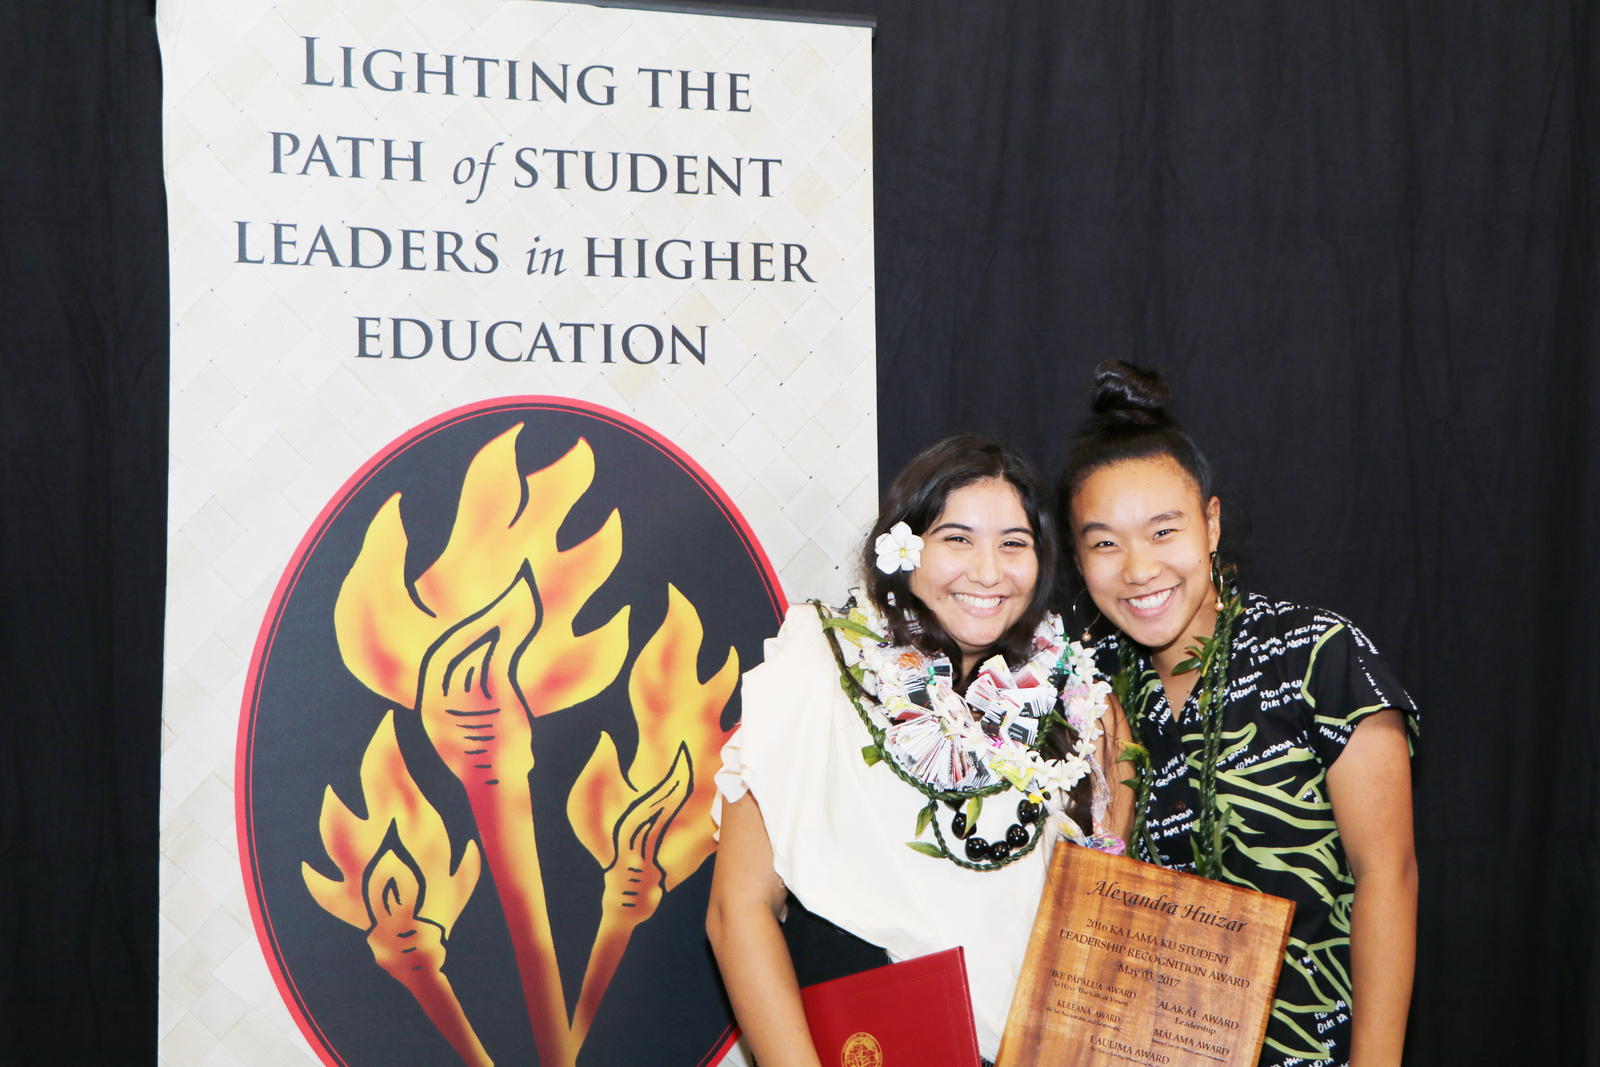 PHOTOS: Leadership Recognition Awards